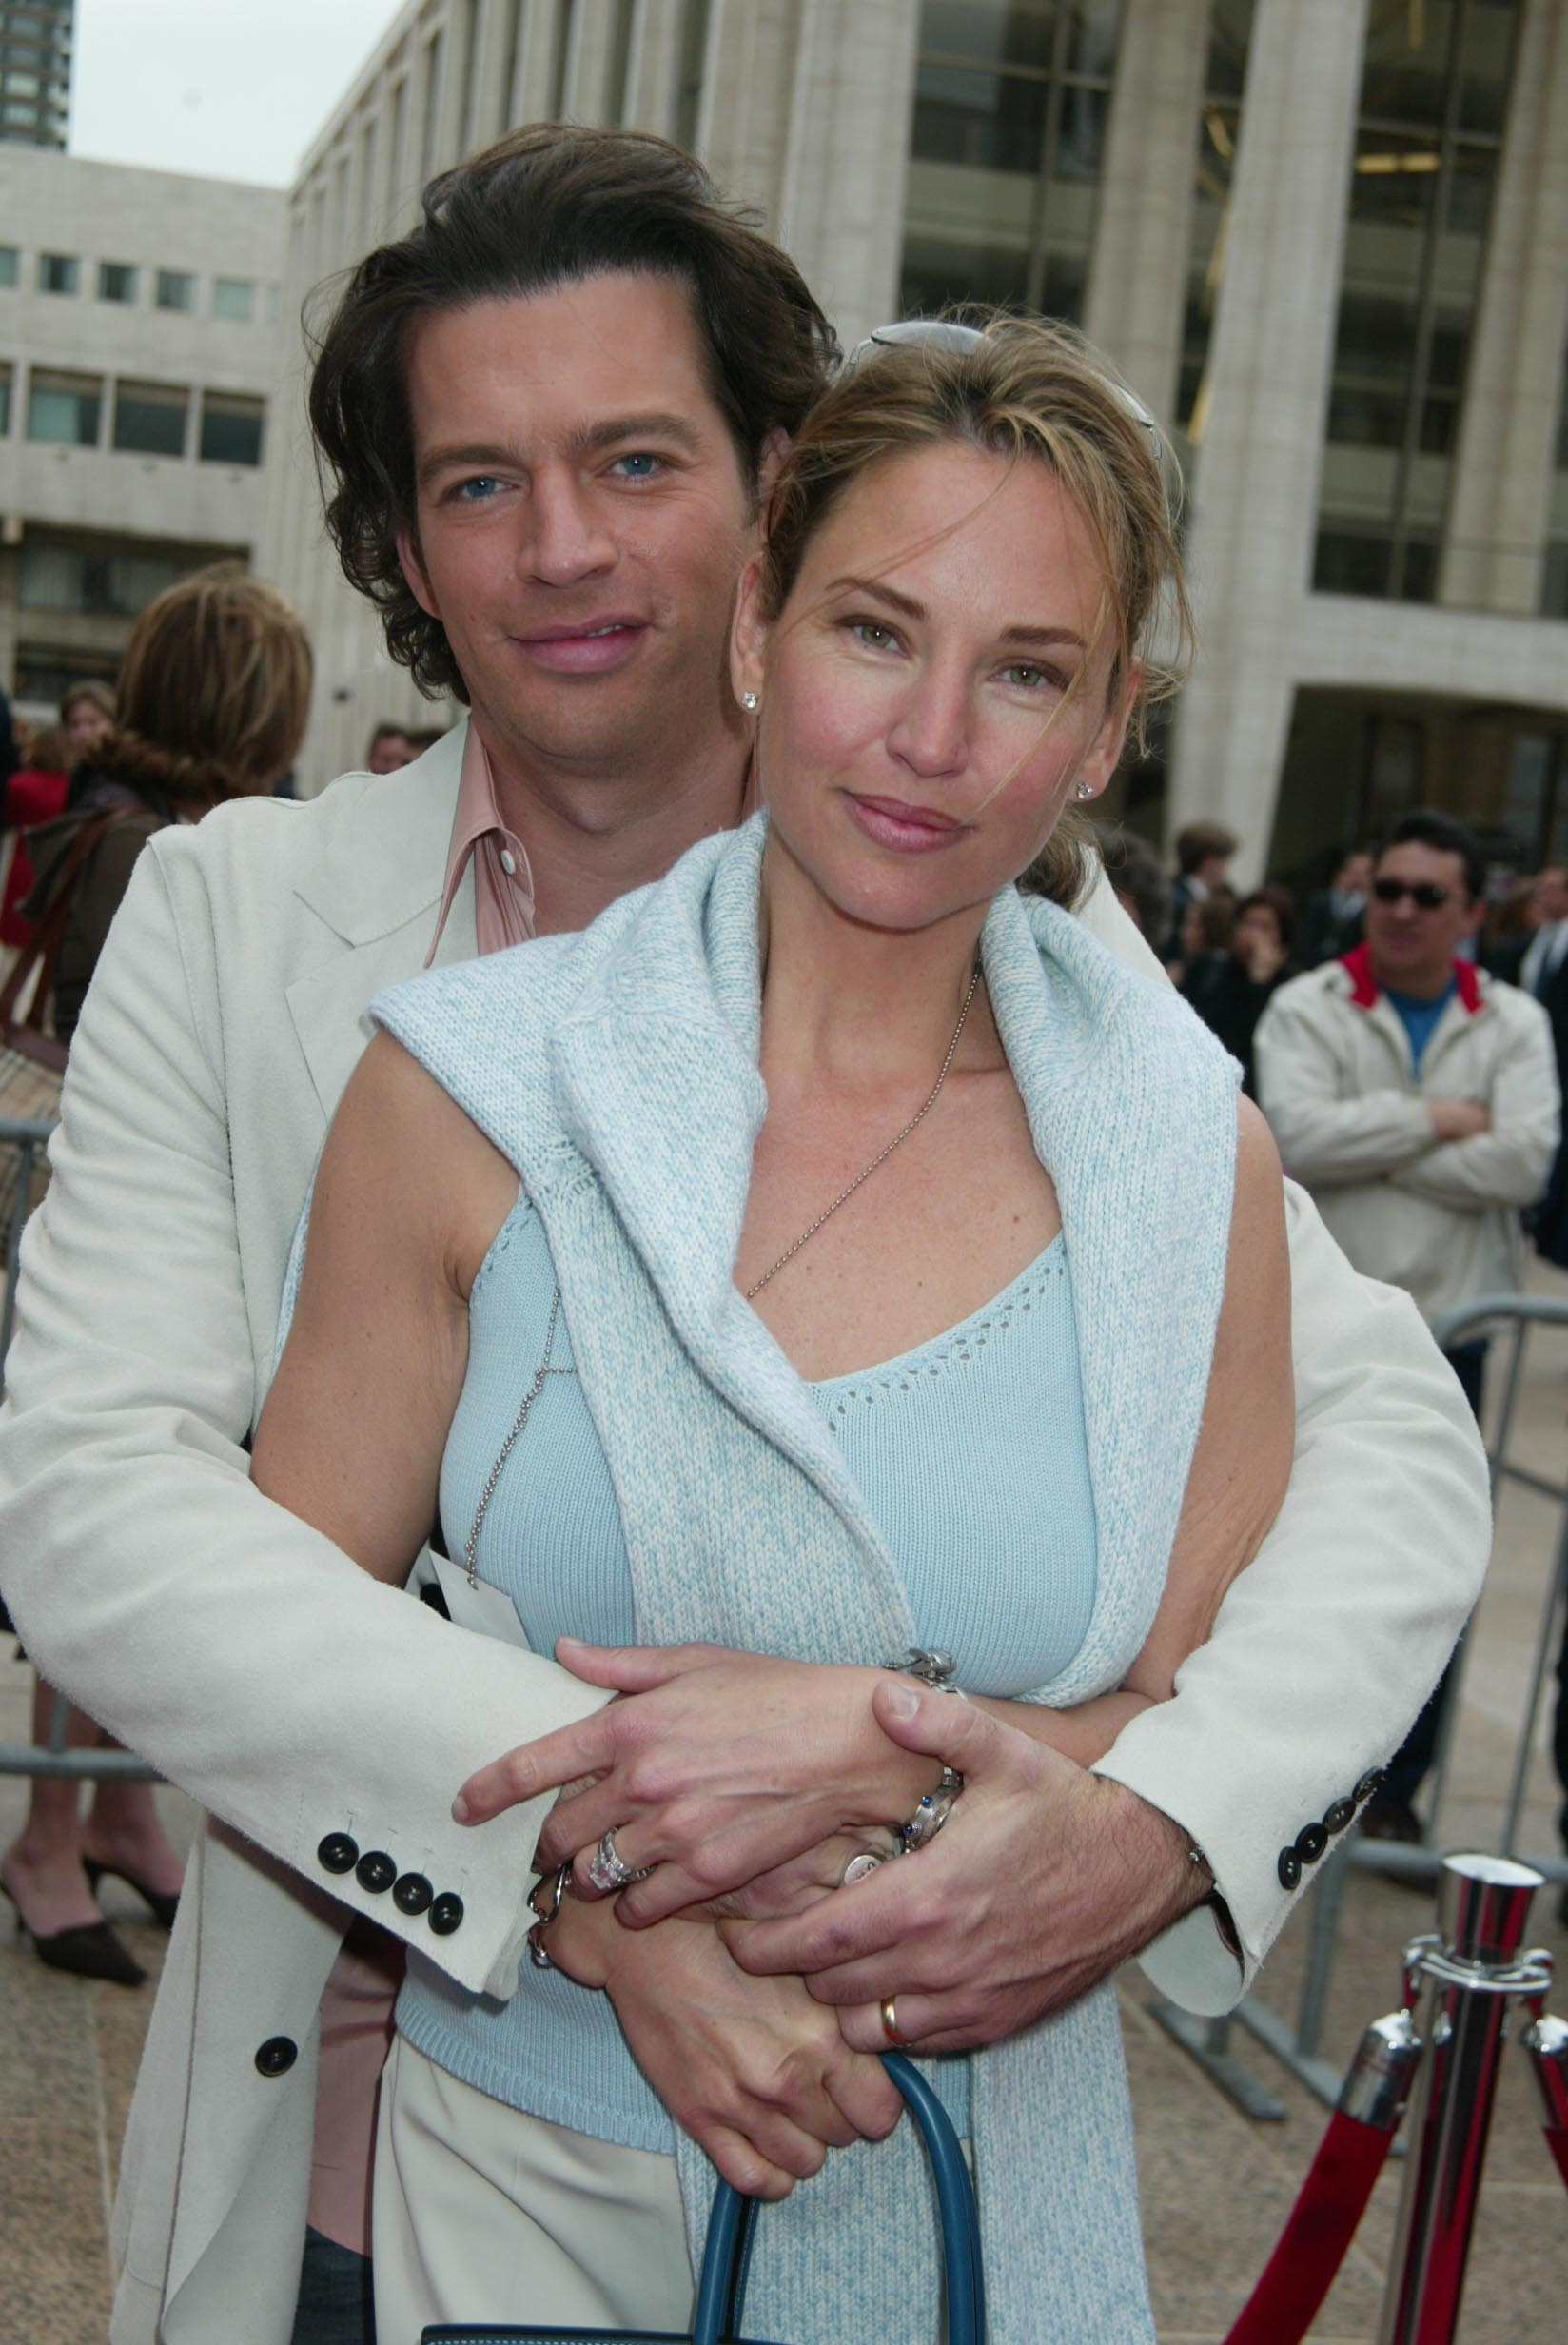 Harry Connick & wife Jill Goodacre during NBC 2003-2004 Upfront - Arrivals at The Metropolitan Opera House. | Photos: Getty Images